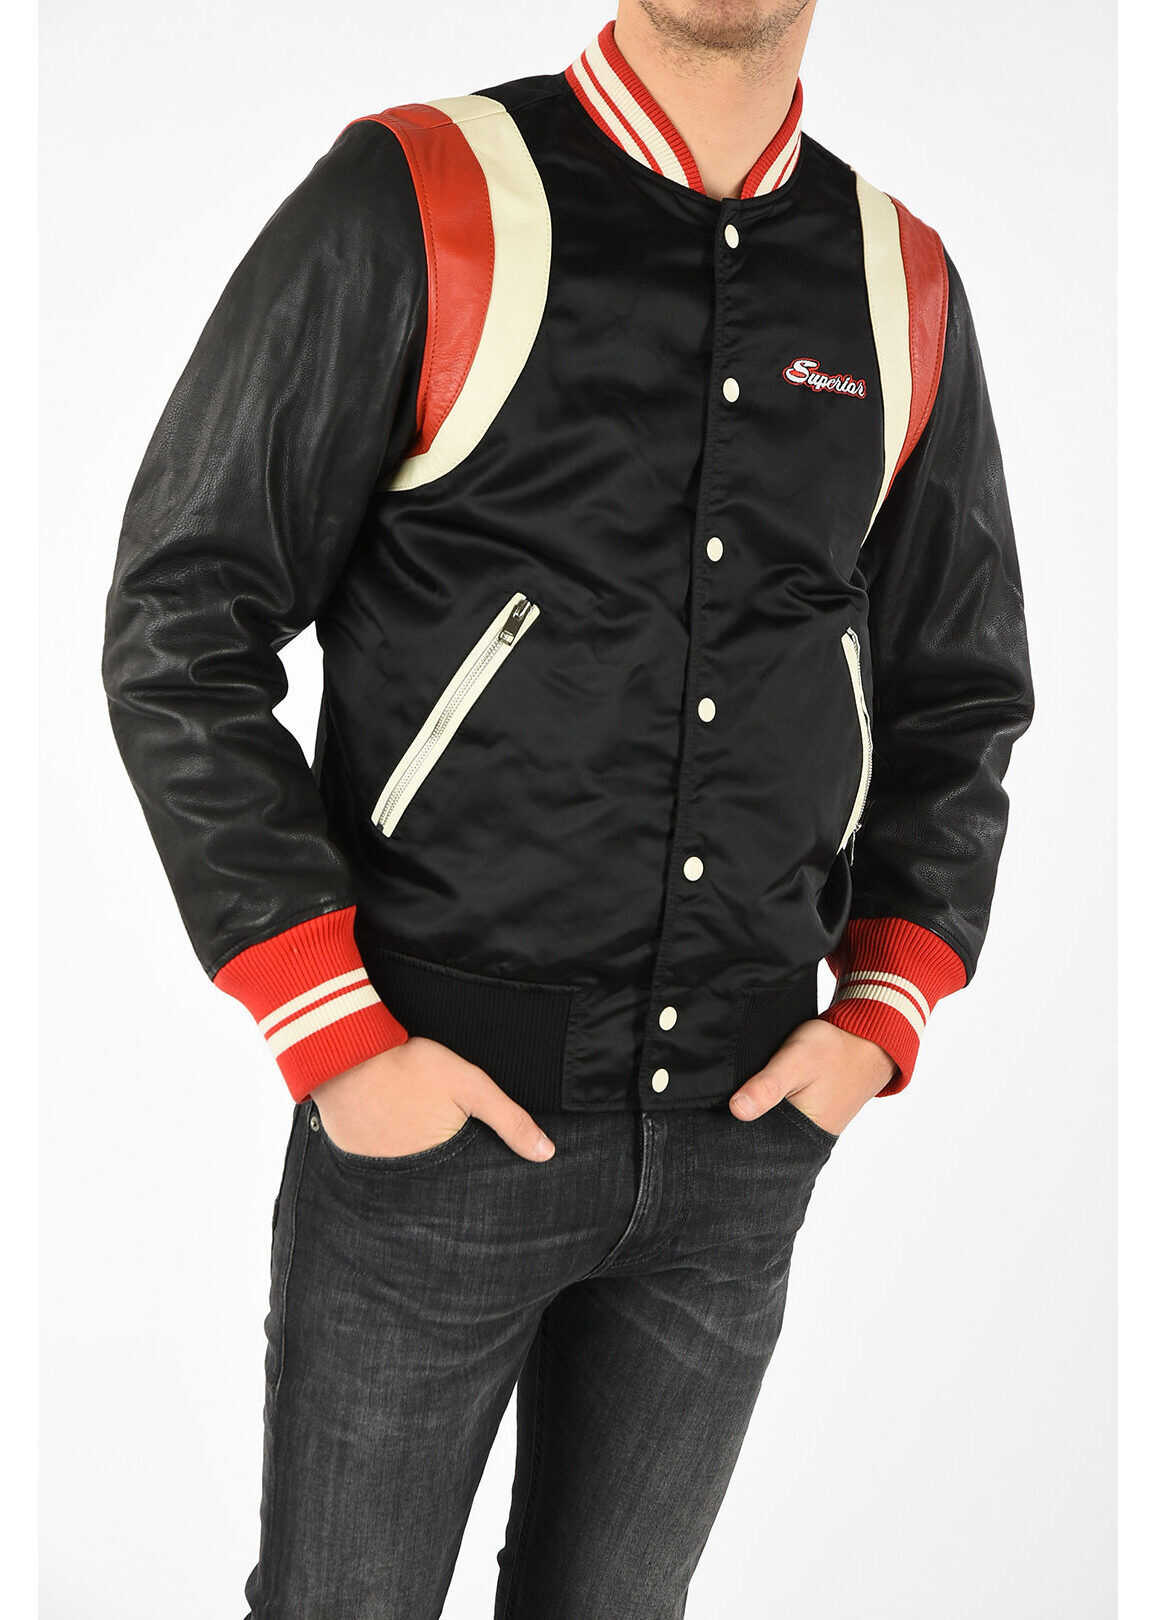 Diesel L-HARU Bomber with Leather Sleeves MULTICOLOR imagine